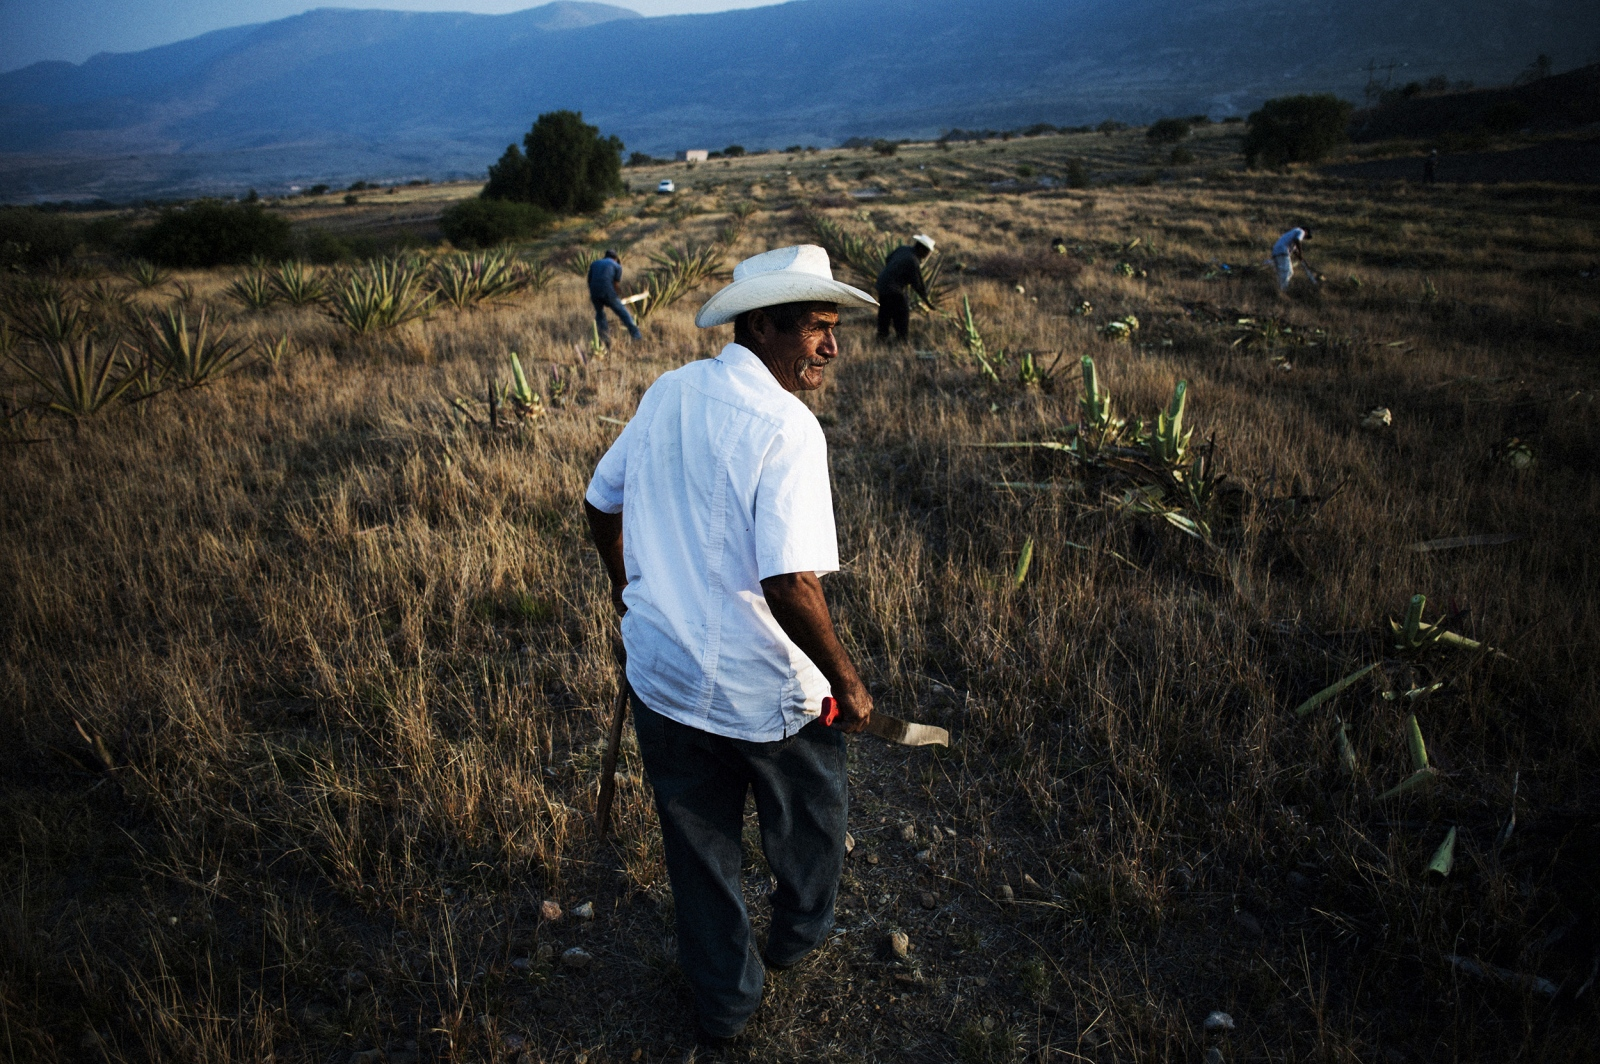 Jimadores harvest agave in the fields surrounding Santiago Matatlan, Oaxaca, Mexico.